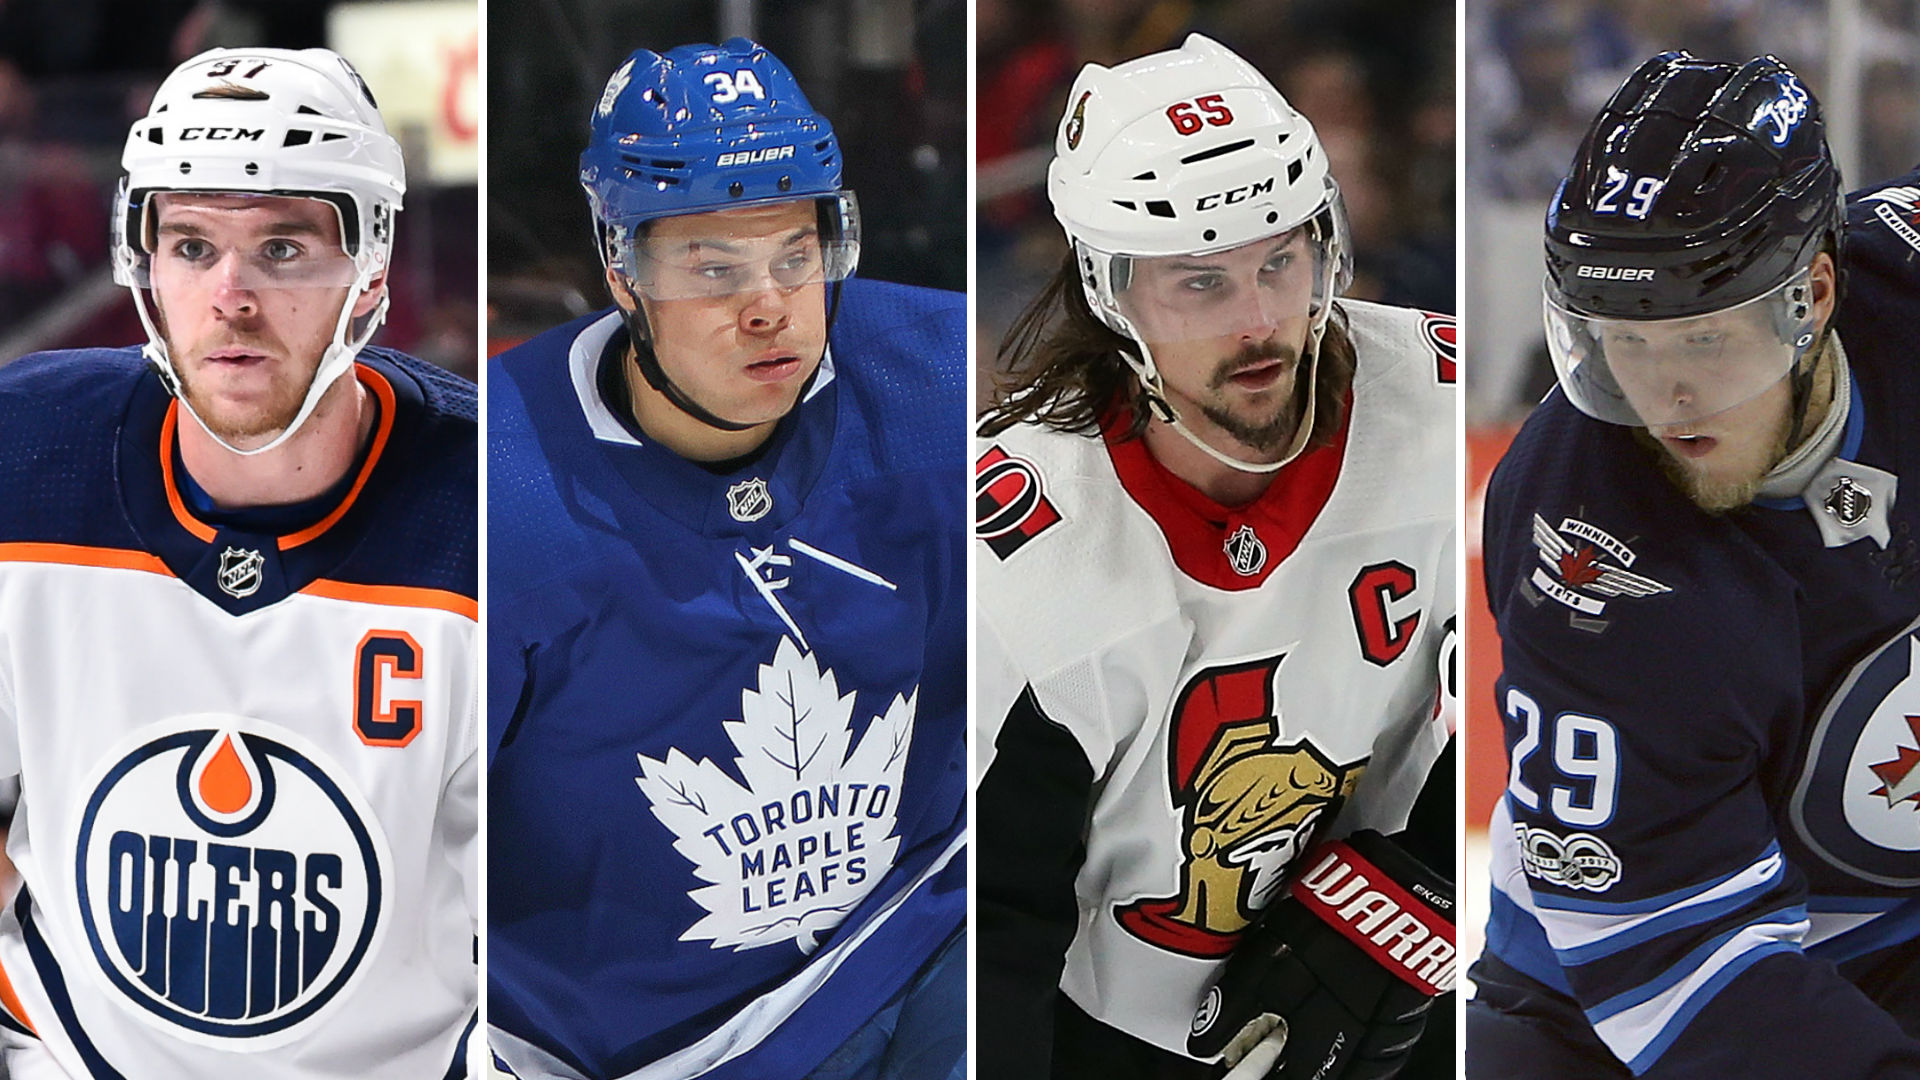 nhl players in the olympics 31-01-2018 when willie desjardins coached canada's 2010 world junior team stacked with future nhl players taylor hall, jordan eberle, brayden schenn, alex pietrangelo and goaltenders jake allen and martin jones, it took a wild final game with john carlson scoring in overtime to win the gold medal for the united states.